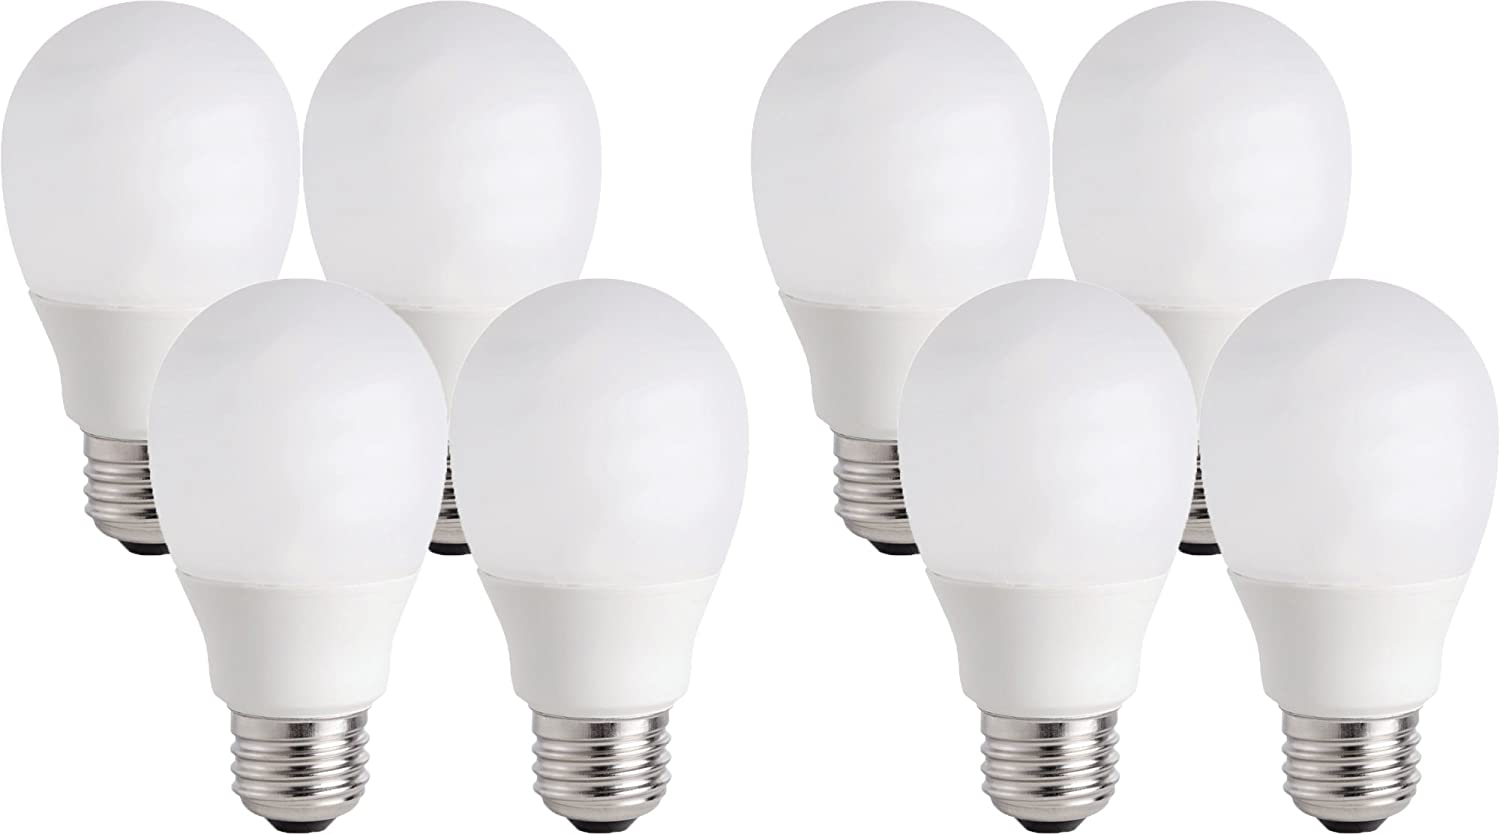 CFL Shatter Resistant Light Bulb with 9.1 Year Life 8 Bulbs 60W Equivalent Philips 14W 434357